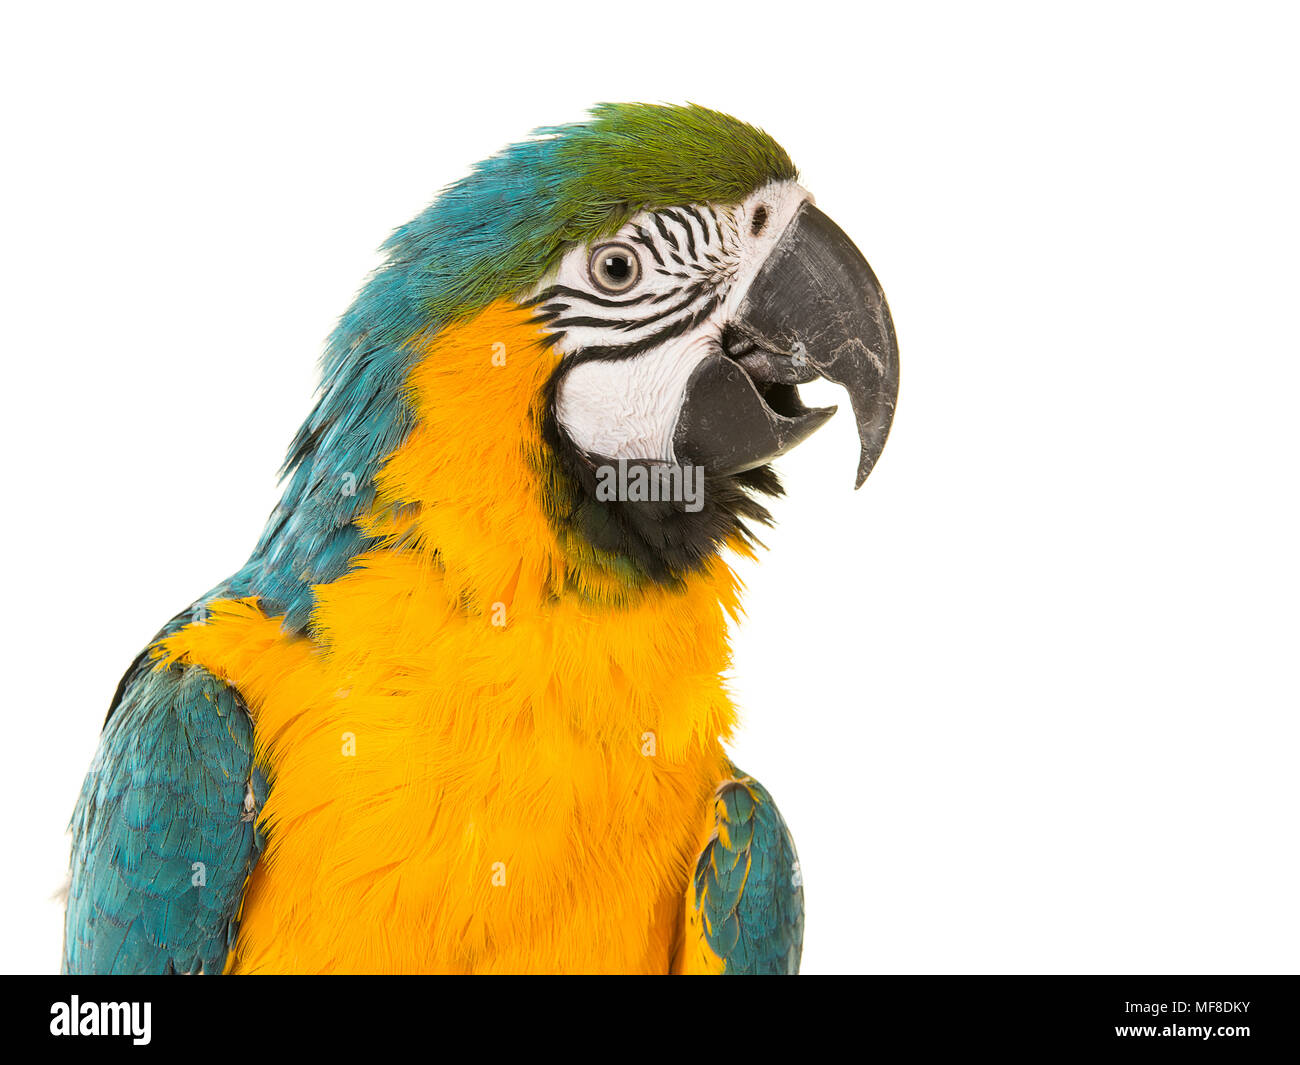 Blue and yellow macaw portrait looking to the right with its beek open on a white background - Stock Image